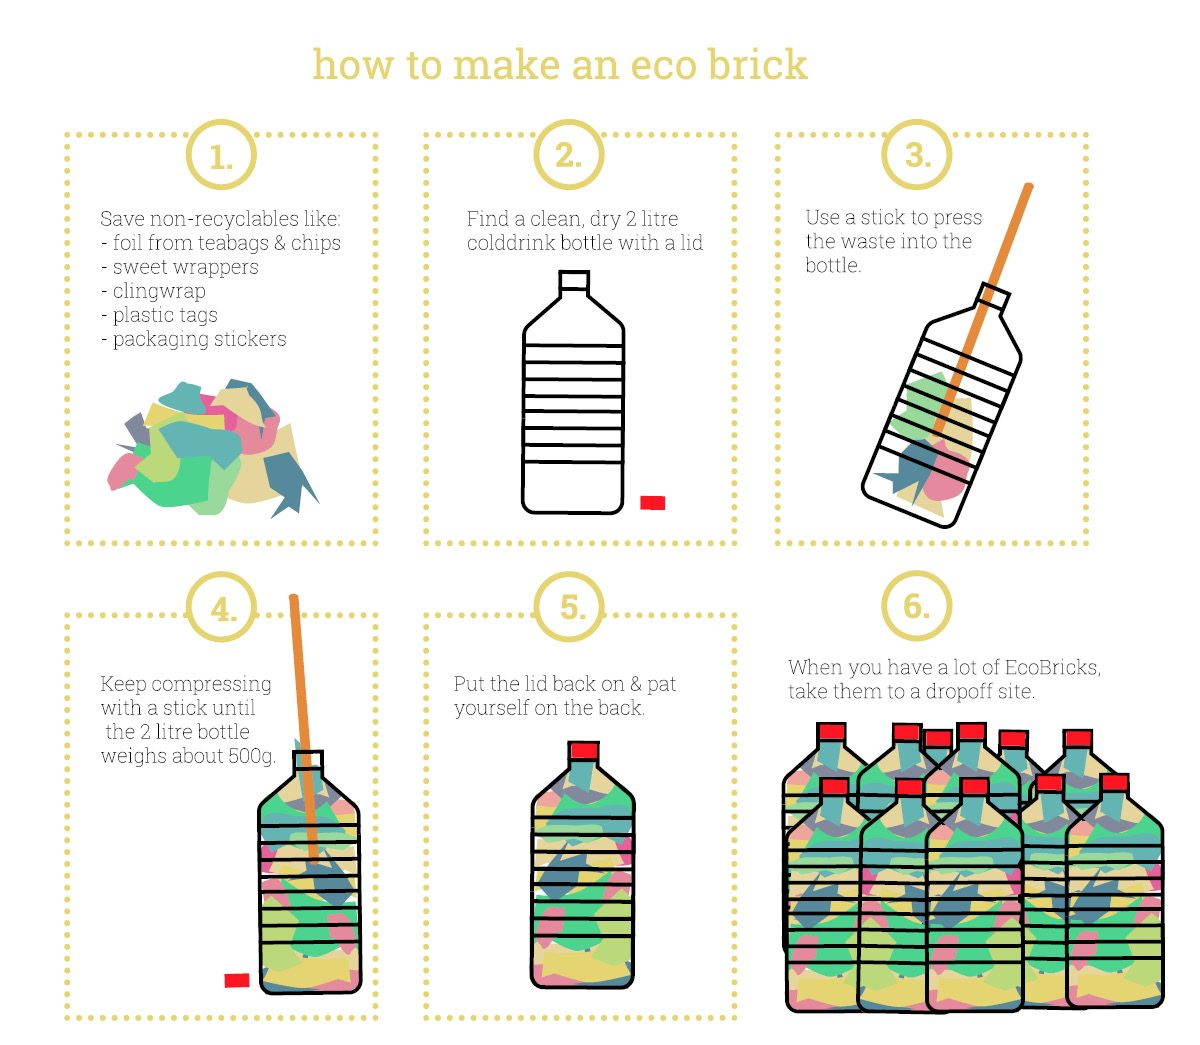 ecobricks how to